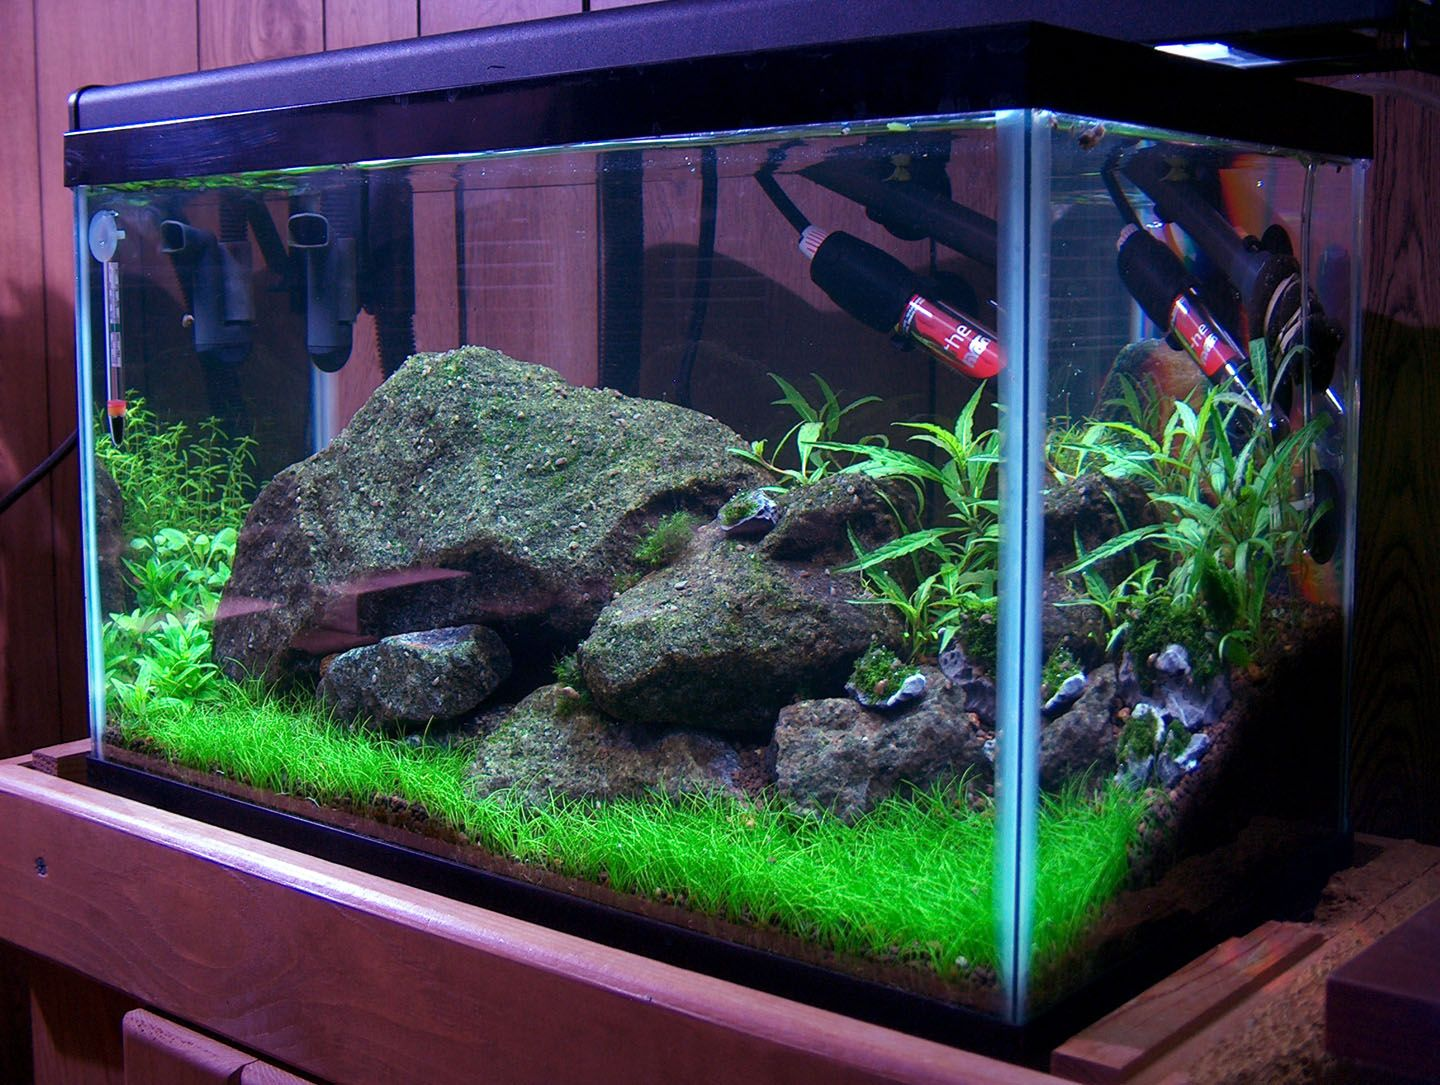 10 Gallon Fish Tank Ideas | www.imgkid.com - The Image Kid ... 10 Gallon Fish Tank Ideas